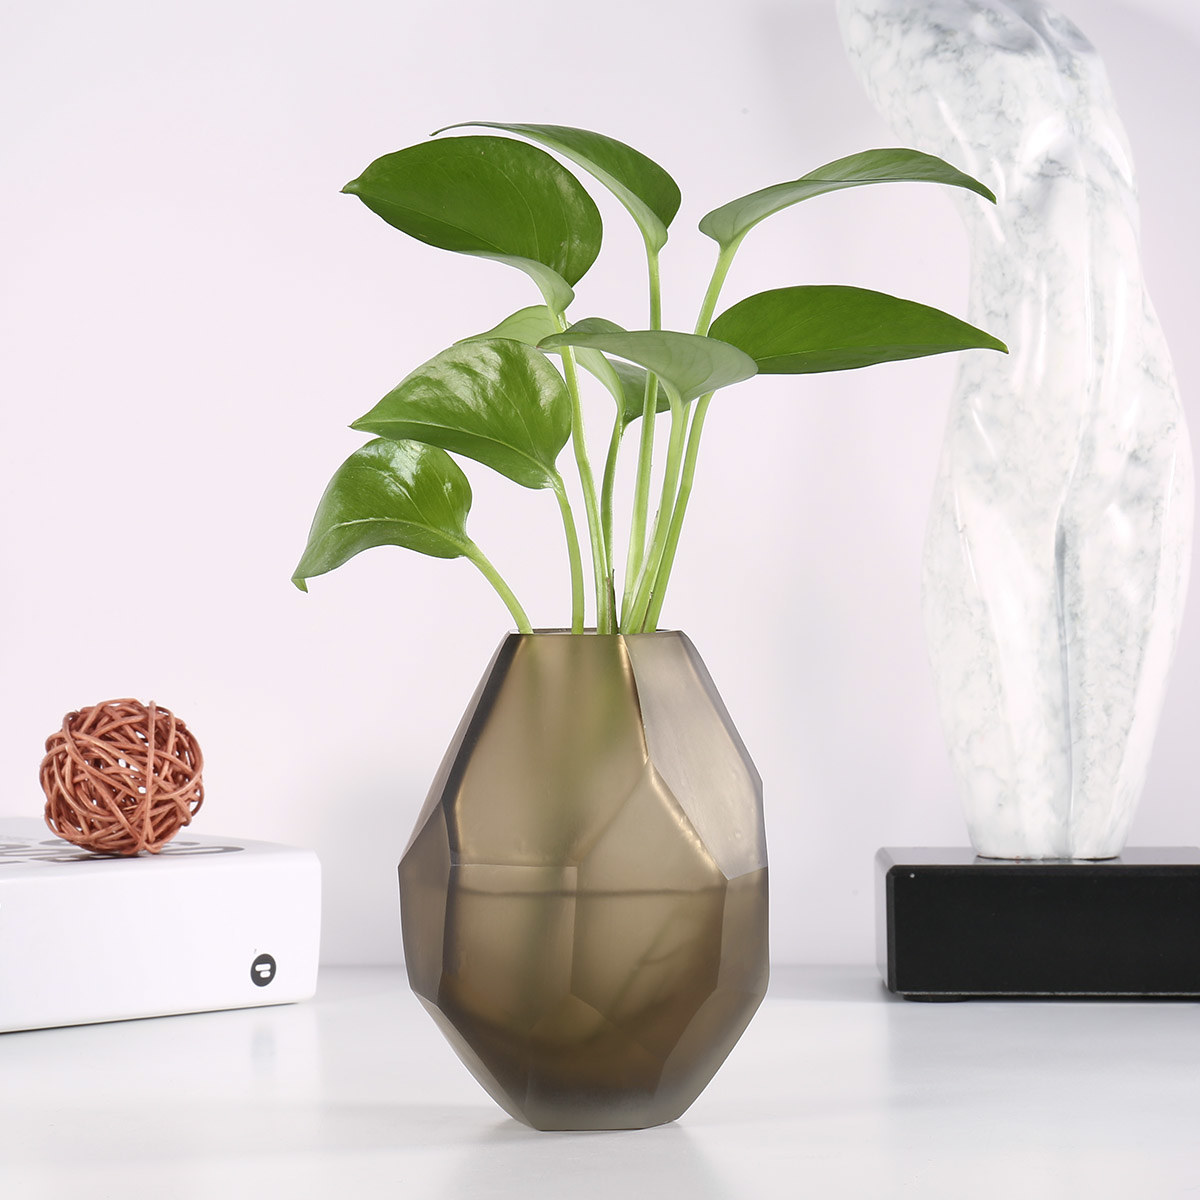 TooArts.com & Best and cheap chocolate Chocolate Glass Vase with Unique Shape Flower Vase Small and Elegant Vase Decorative Vase for Home Decor Office Place ...